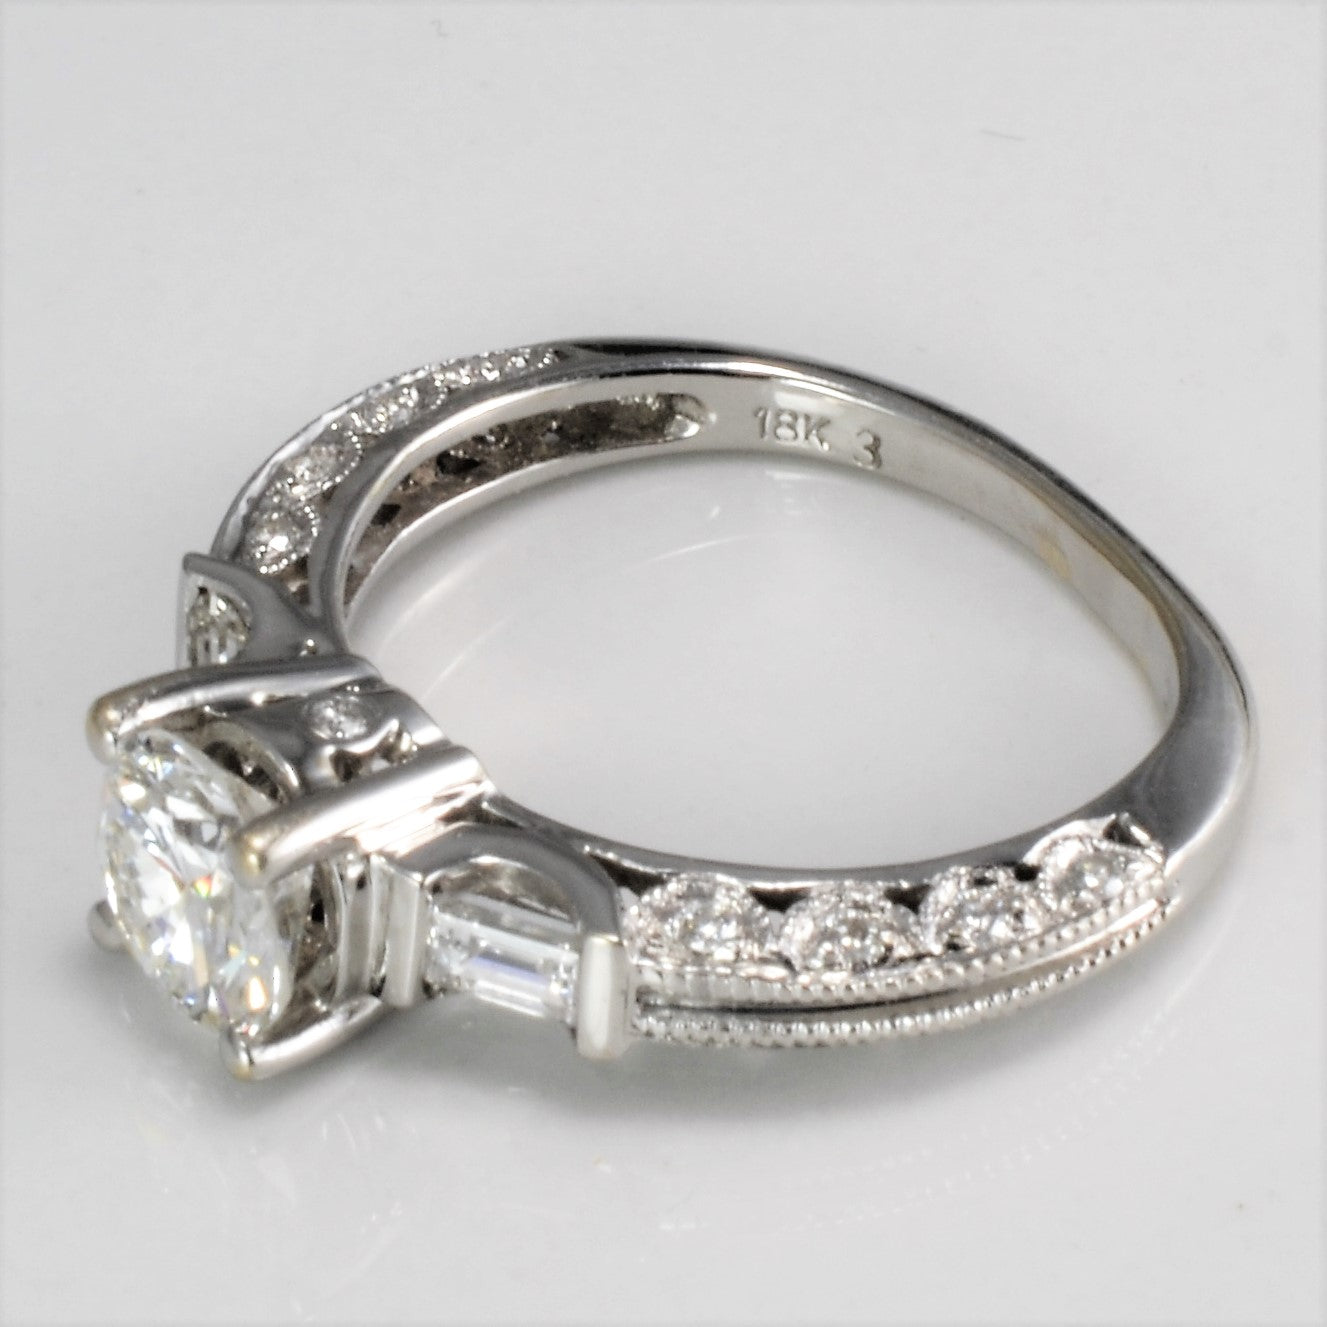 Round Brilliant Engagement Ring With Baguette Accents | 1.04 ctw | SZ 4.75|